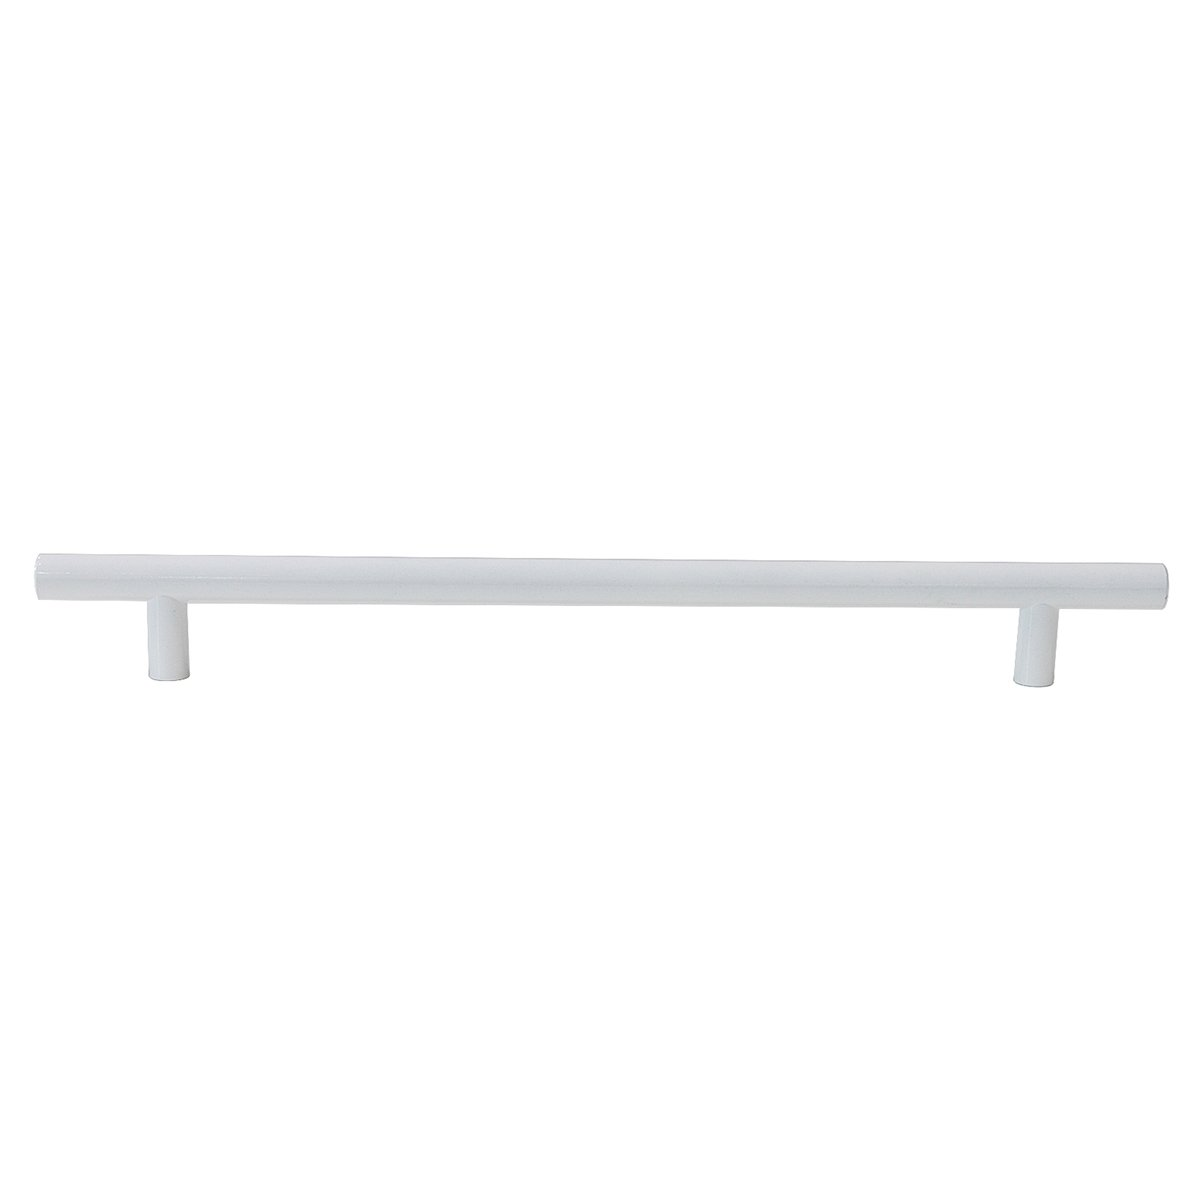 Probrico Modern Cabinet Hardware Dresser Cupboard Handle Pull White Kitchen Cabinet T Bar Knobs Stainless Steel- 12mm Diameter - 8-3/4 Hole Spacing - 5 Pack by Probrico (Image #2)